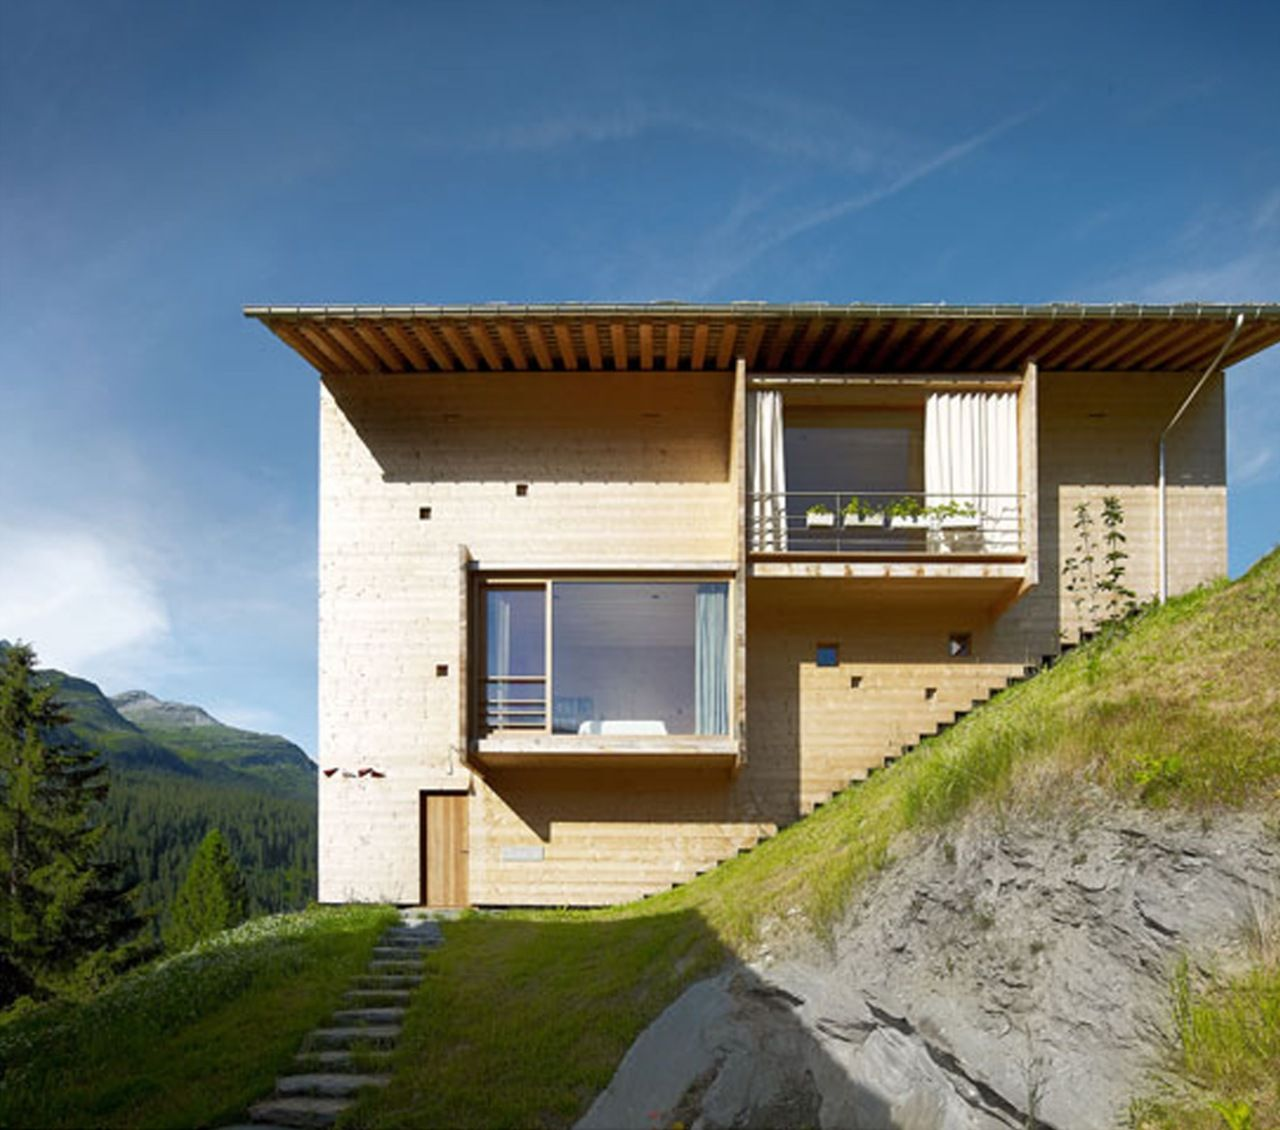 ANNALISA HOUSE by Peter Zumthor. | Architect Peter Zumthor | Pinterest: pinterest.com/pin/113223378104410544